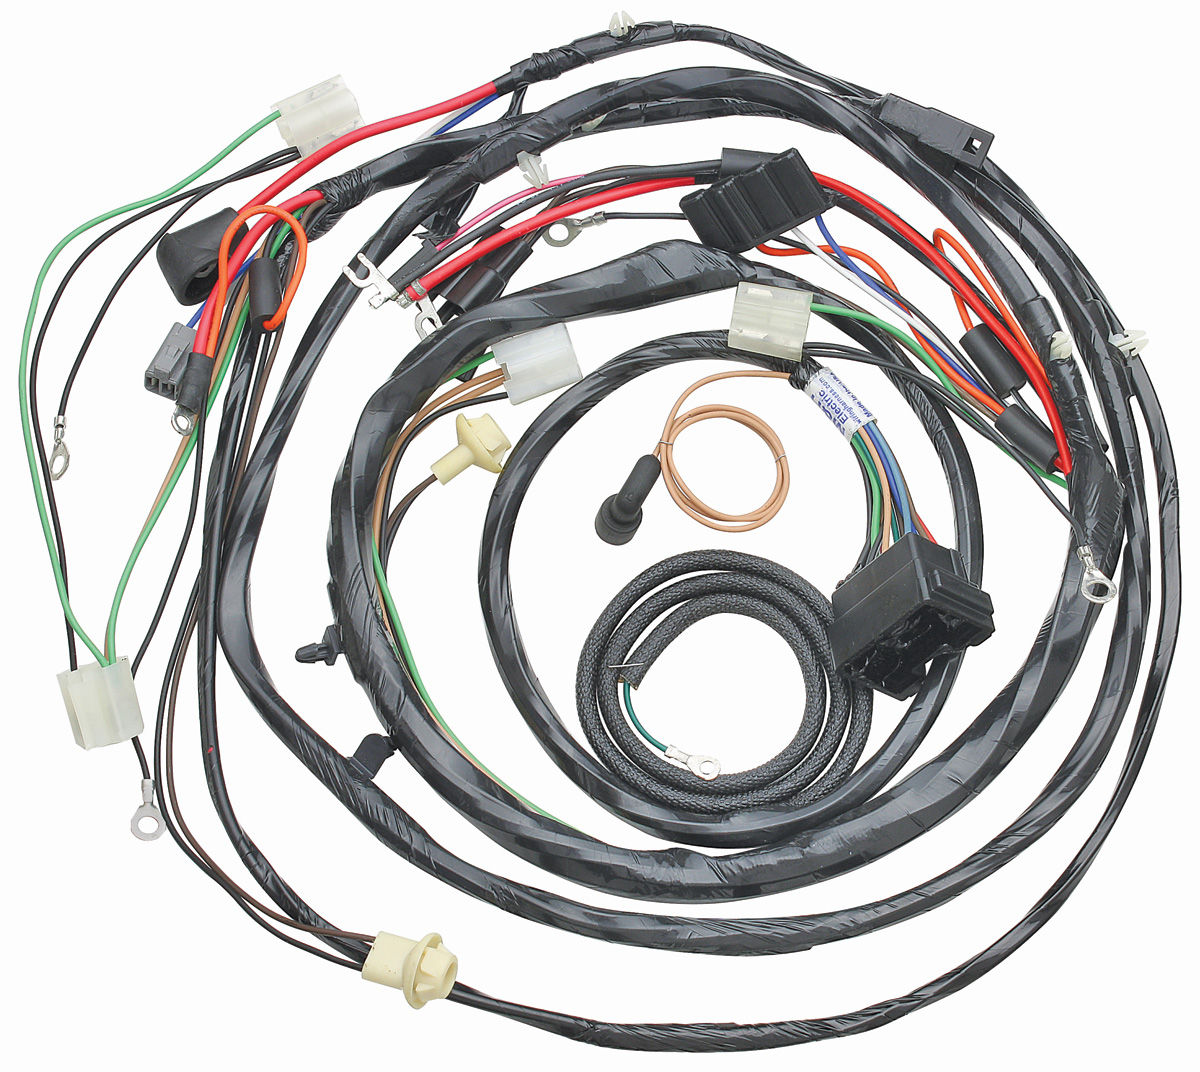 1969 Chevelle Wiring Harness Enthusiast Diagrams 1968 Complete Forward Lamp V8 W Gauges Ext Reg By M H Opgi Com Car Kits